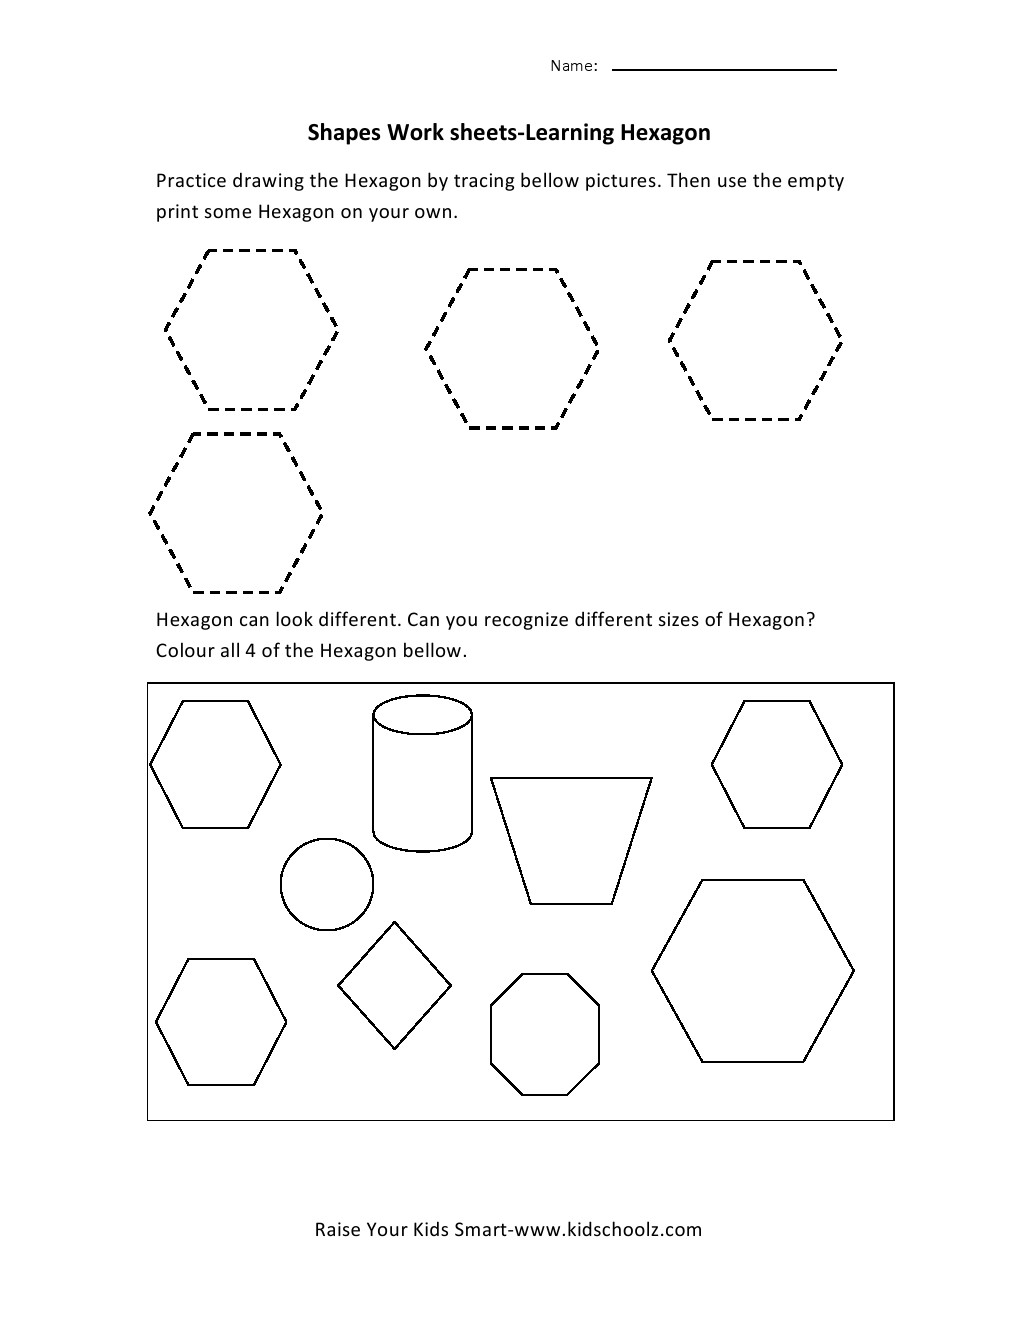 Worksheets Hexagon Worksheets printables hexagon worksheets eatfindr worksheet twisty noodle worksheet